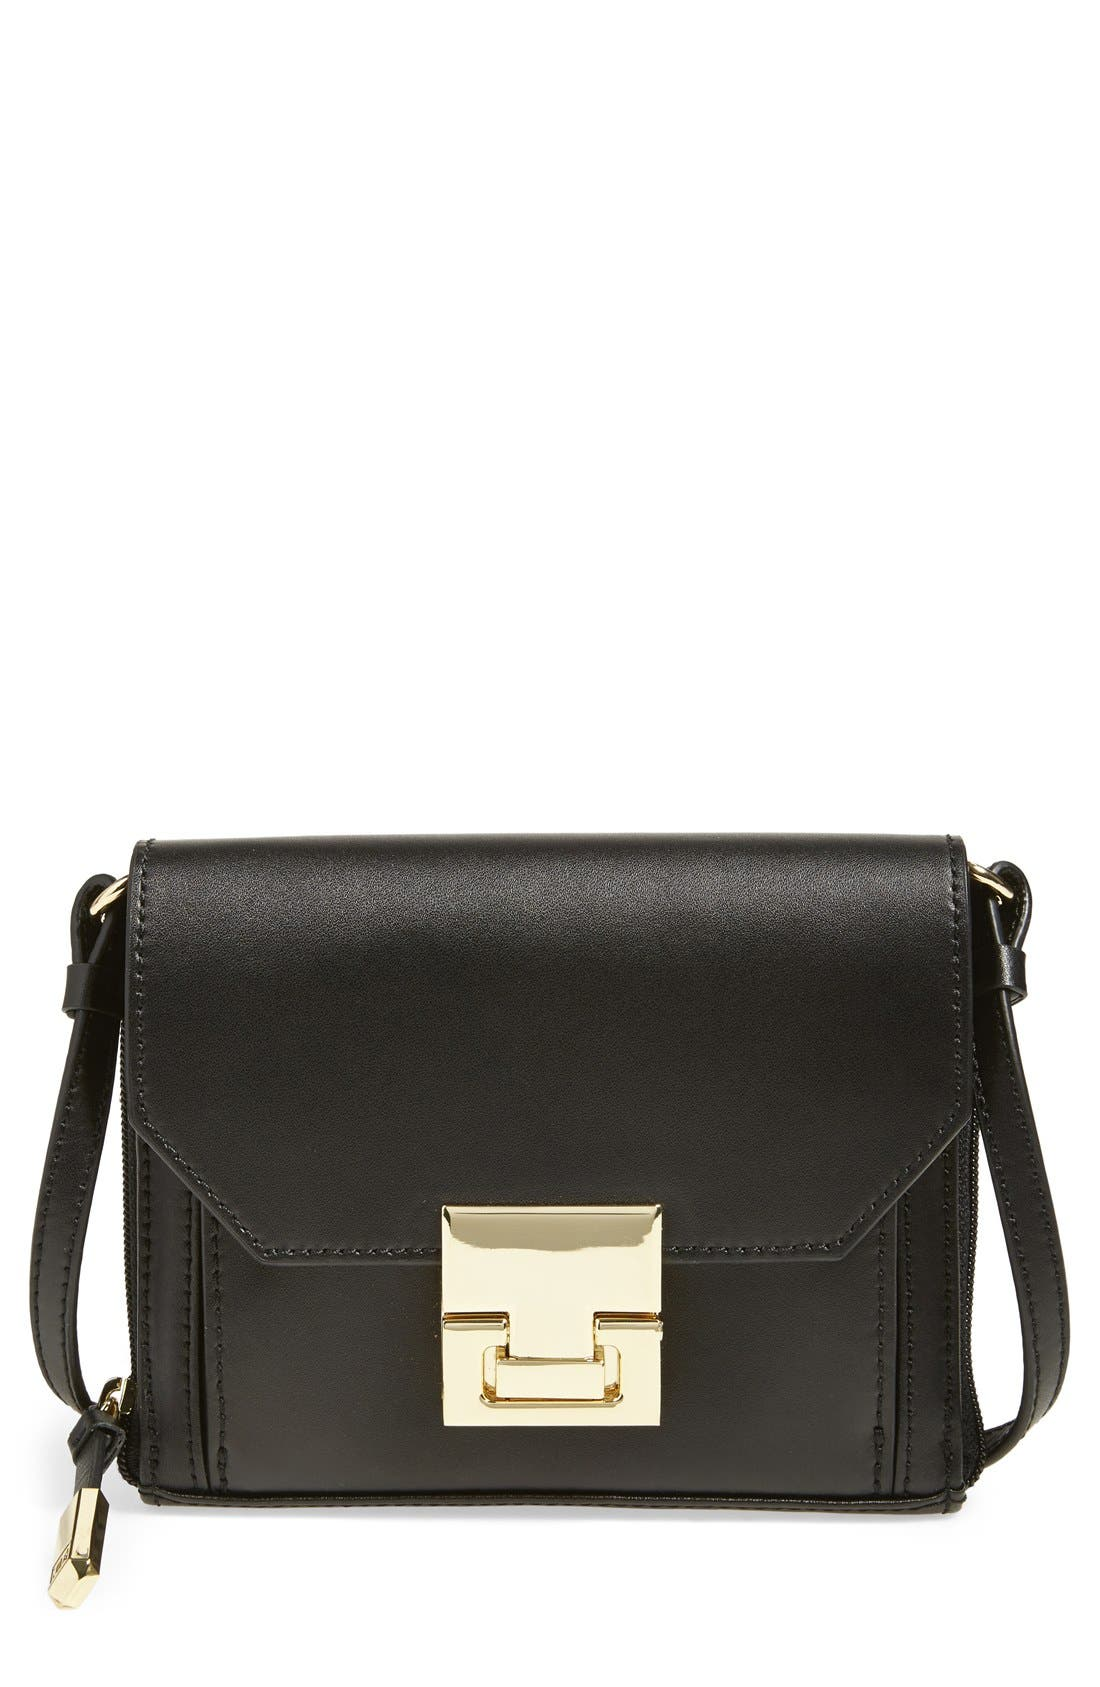 Main Image - Ivanka Trump 'Hopewell' Crossbody Bag